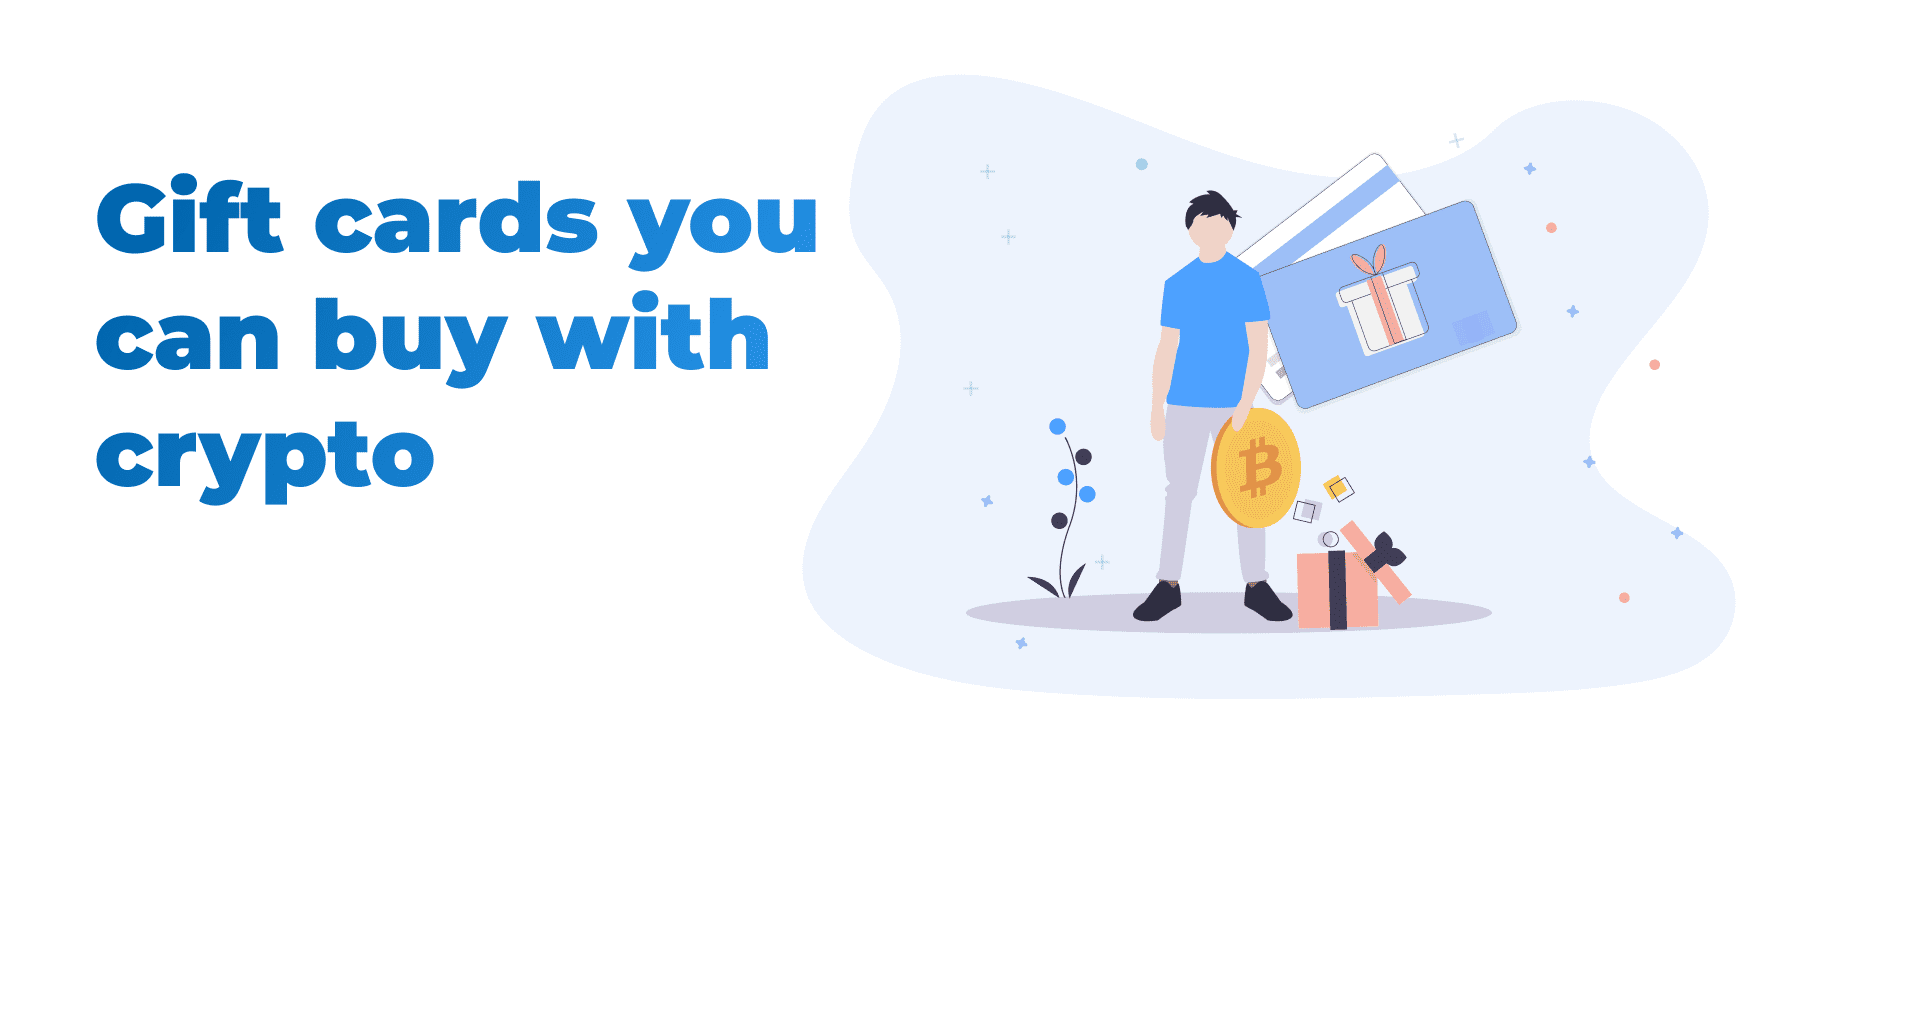 gift cards, buy with crypto, trastra, crypto, cryptocurrency, bitcoin, litecoin, ethereum, list